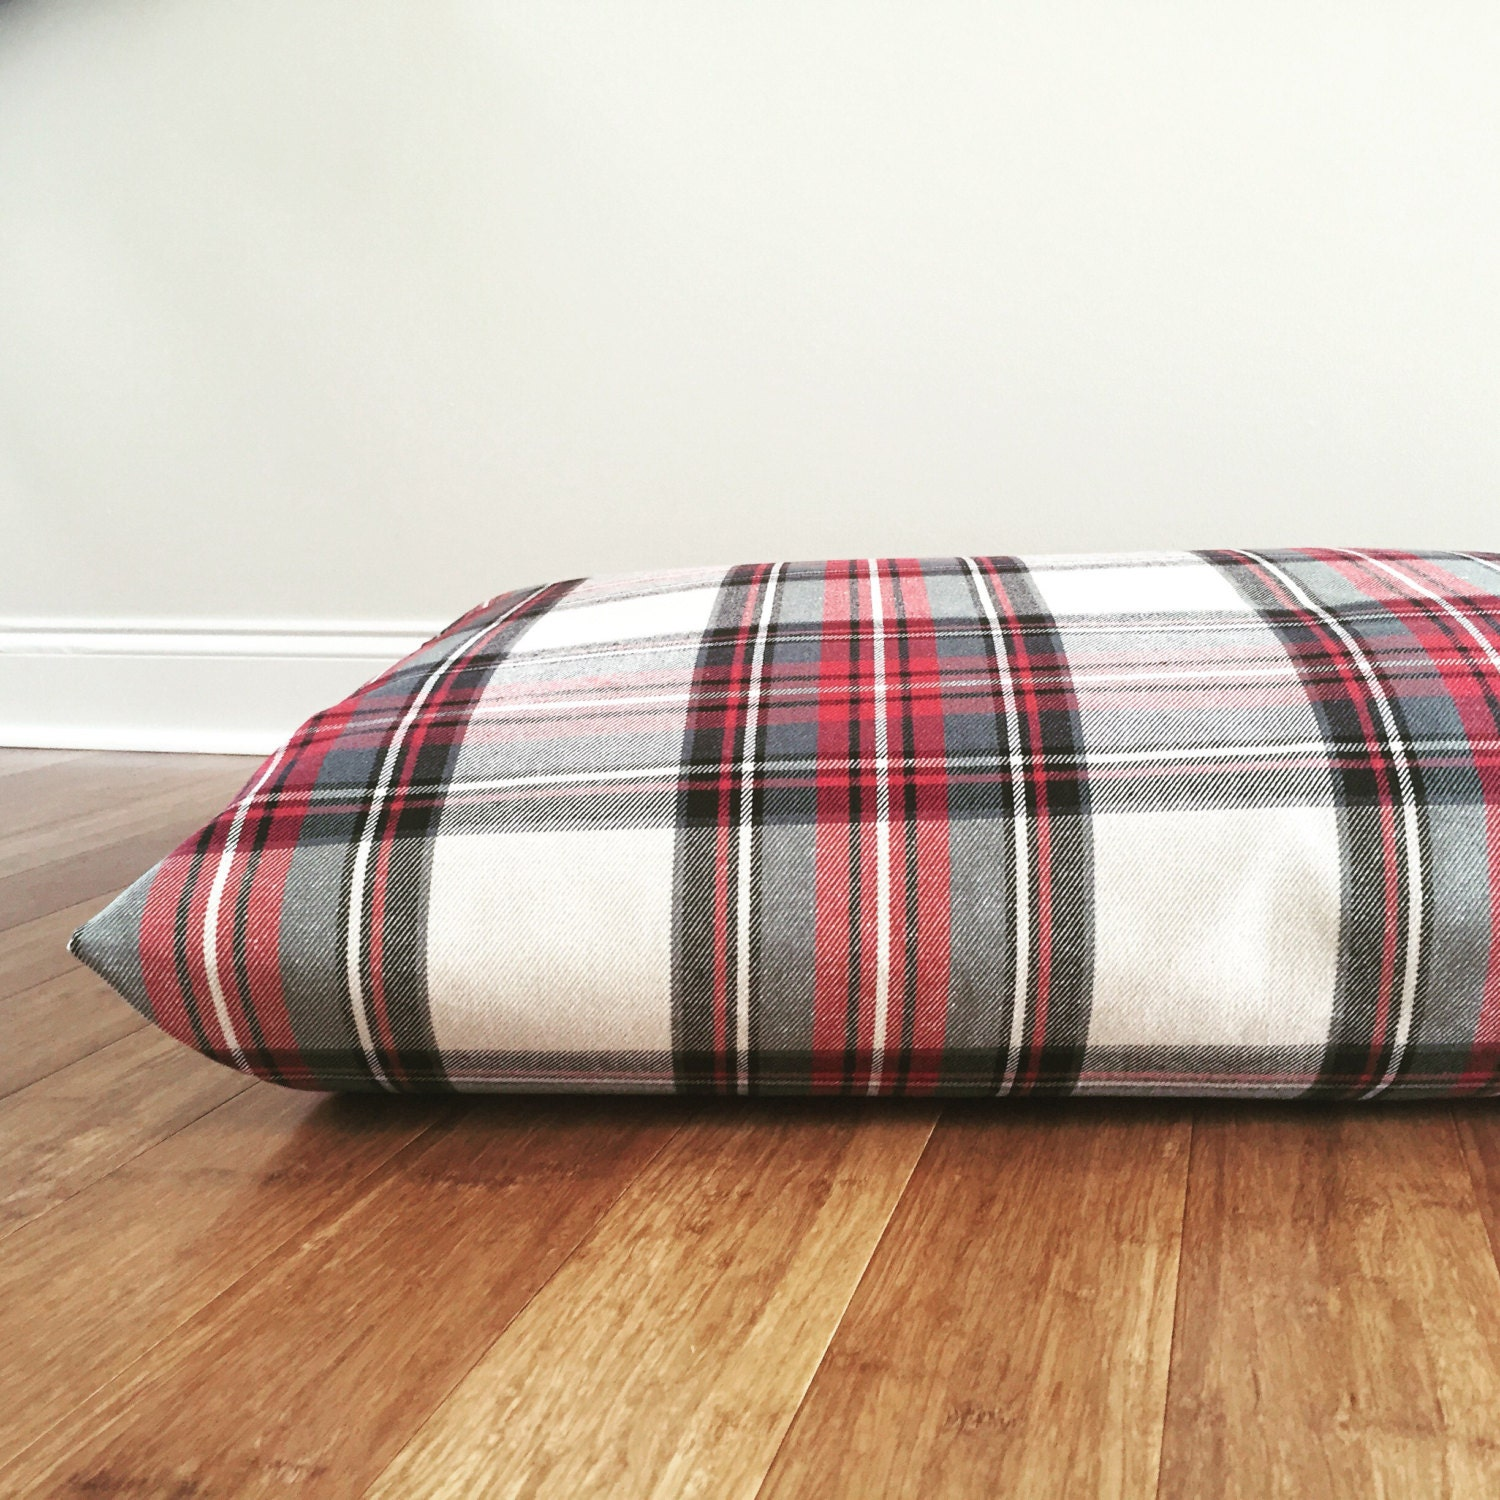 Plaid Dog Bed Cover Red Plaid Dog Beds Cover Christmas Dog